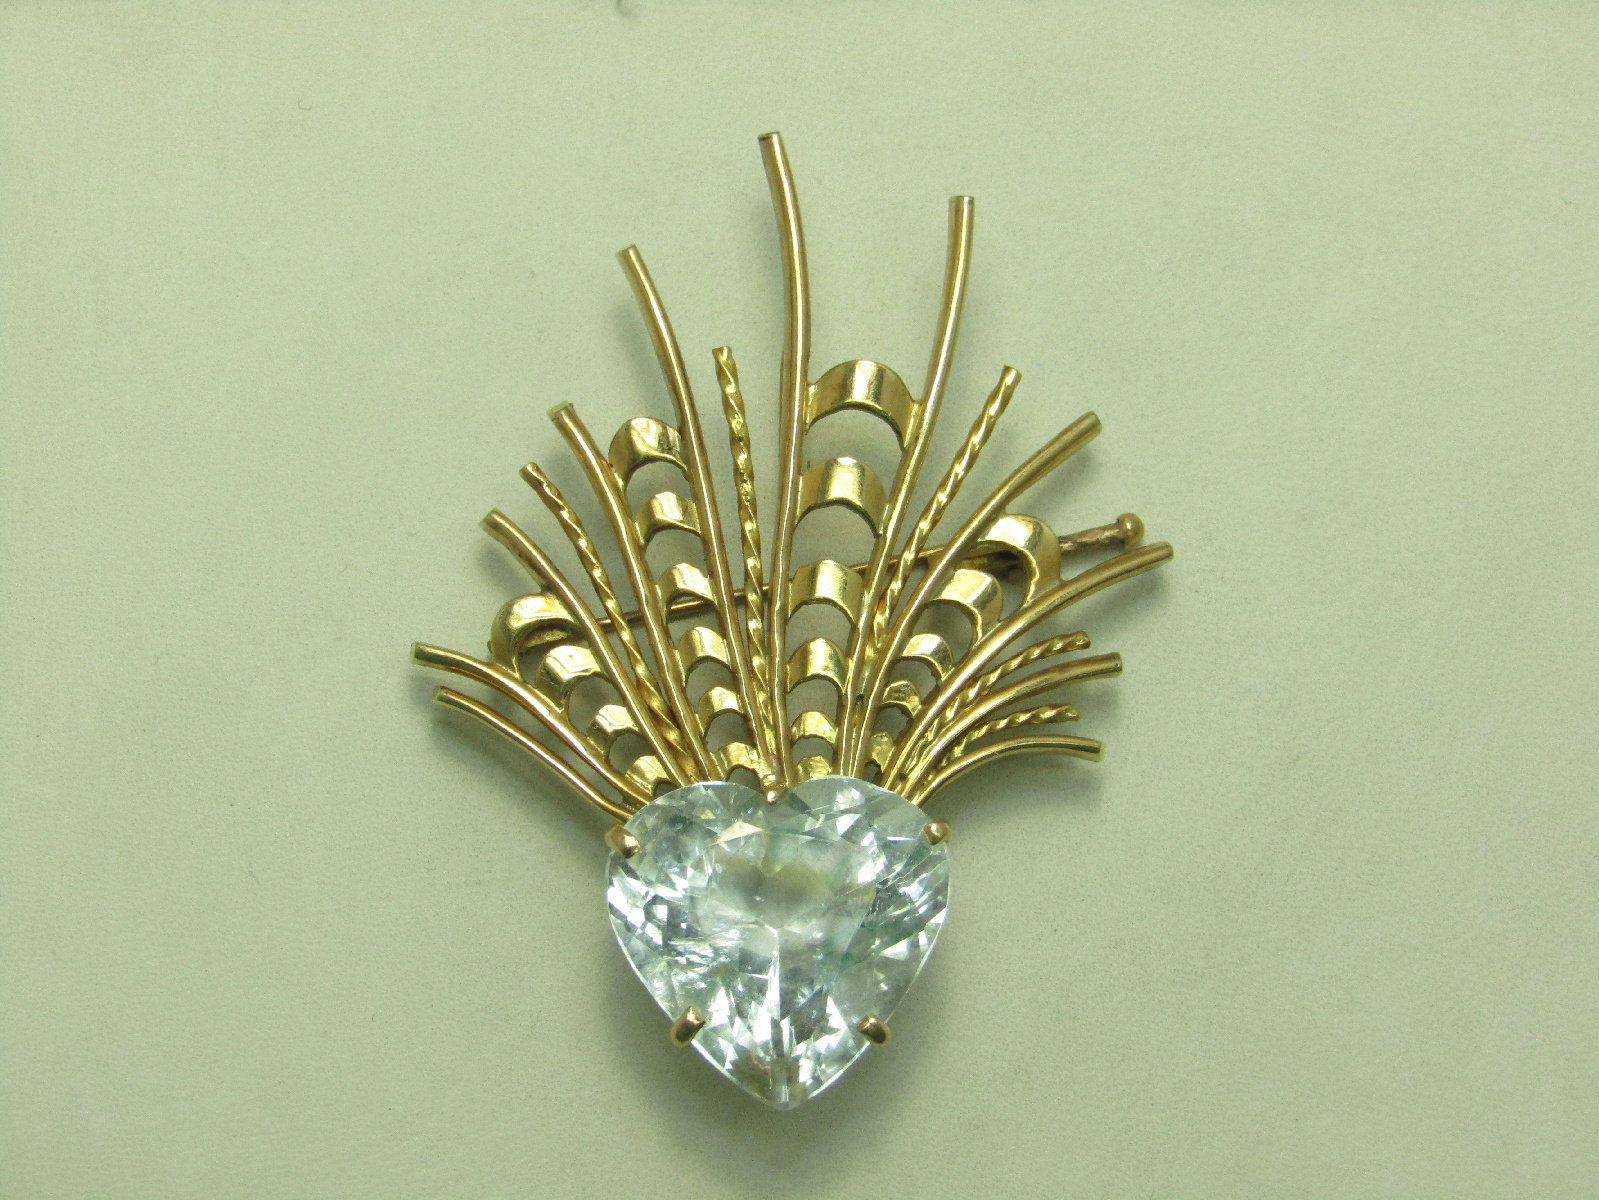 Unmarked Tests 14k Yellow Gold Vintage Jewelry Pin Brooch